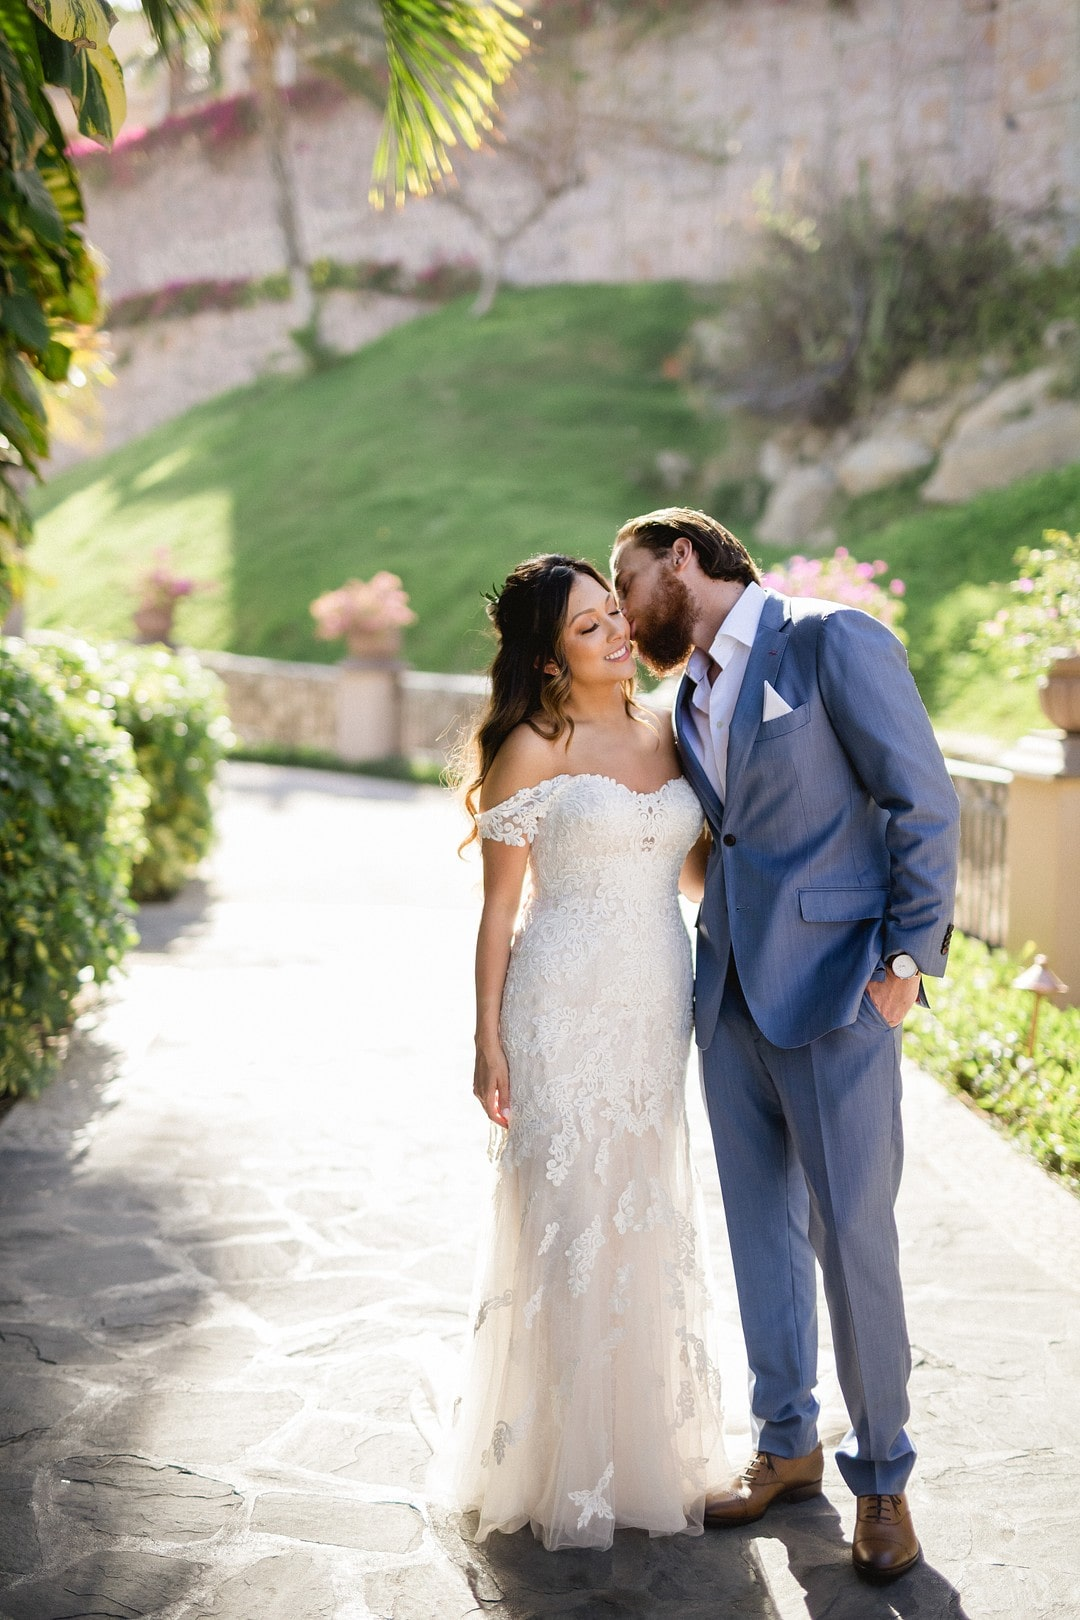 From San Francisco to Cabo: A Fun Destination Wedding, Photography by Sara Richardson Photography for Destination Wedding Blog Adriana Weddings